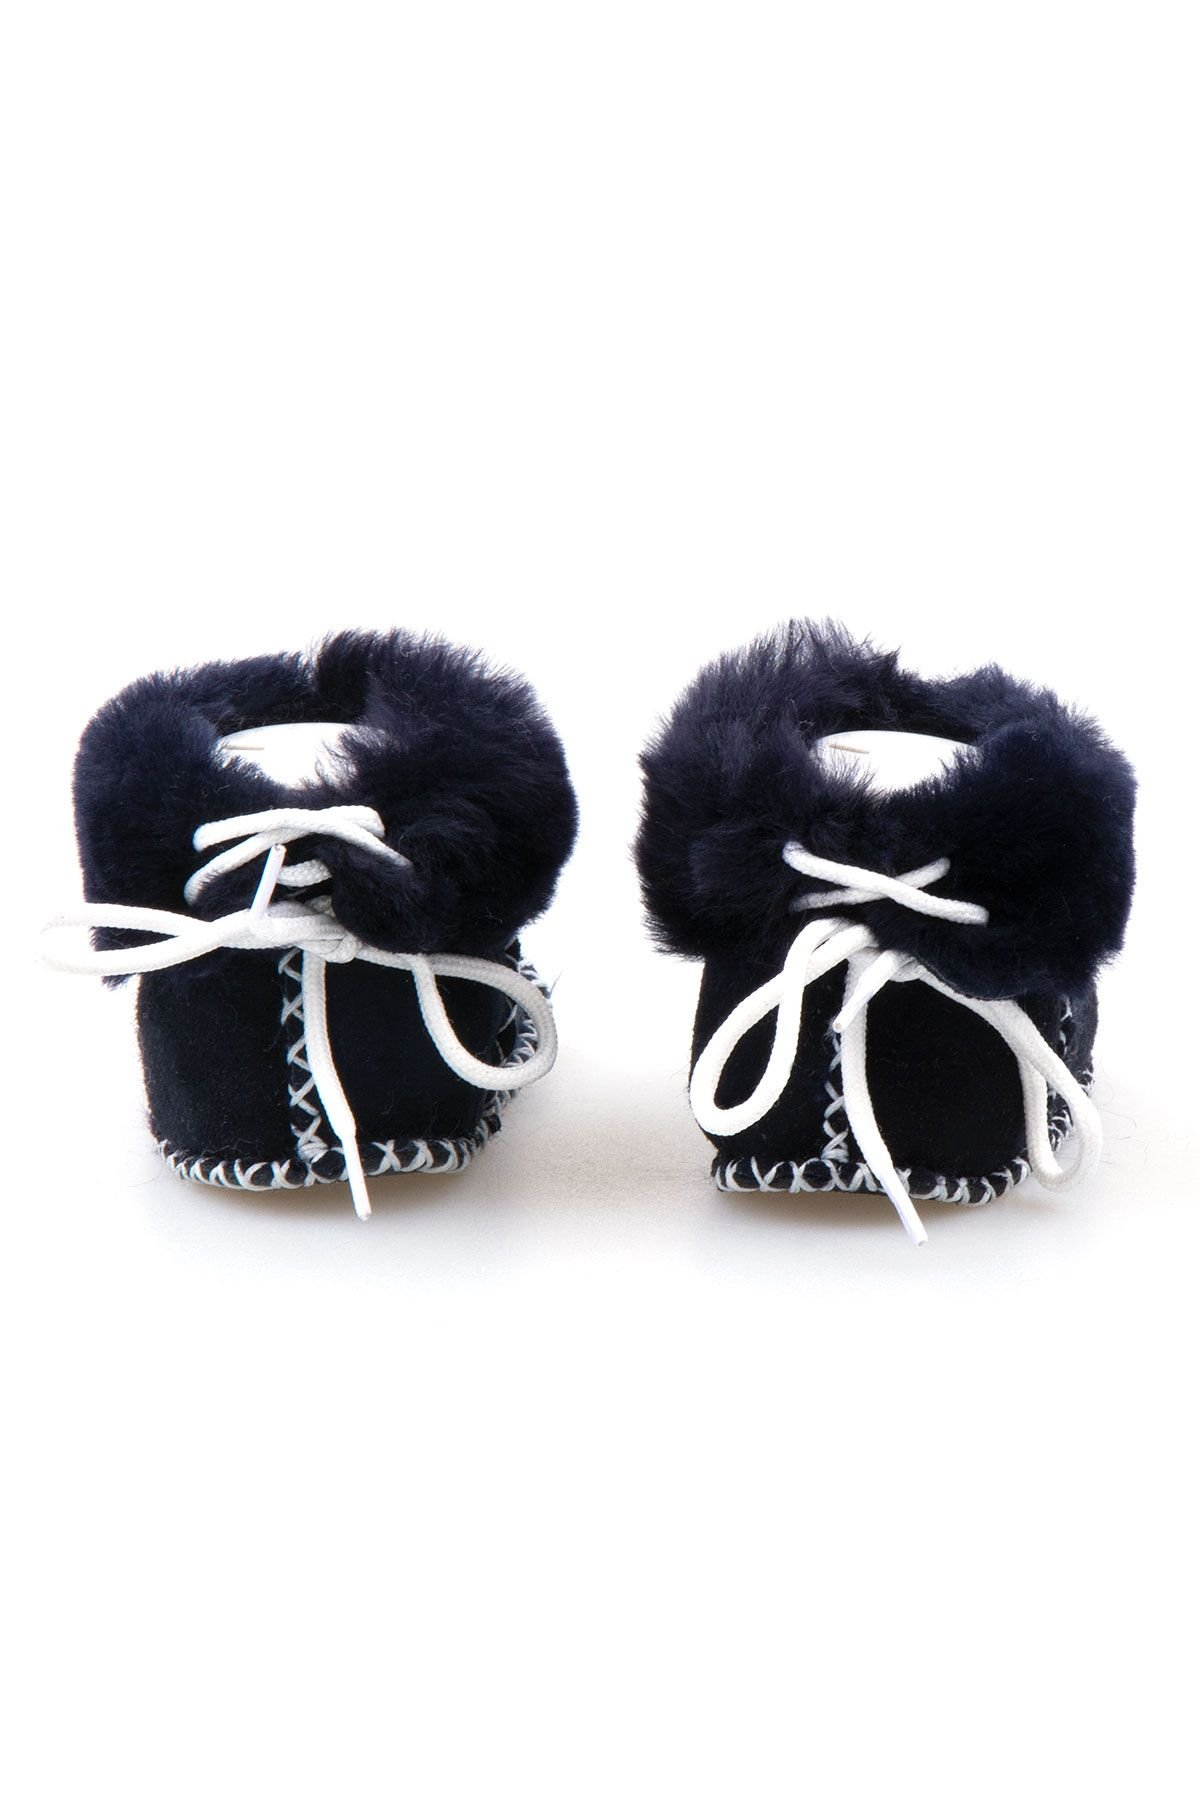 Pegia Shearling Baby's Booties 141114 Navy blue